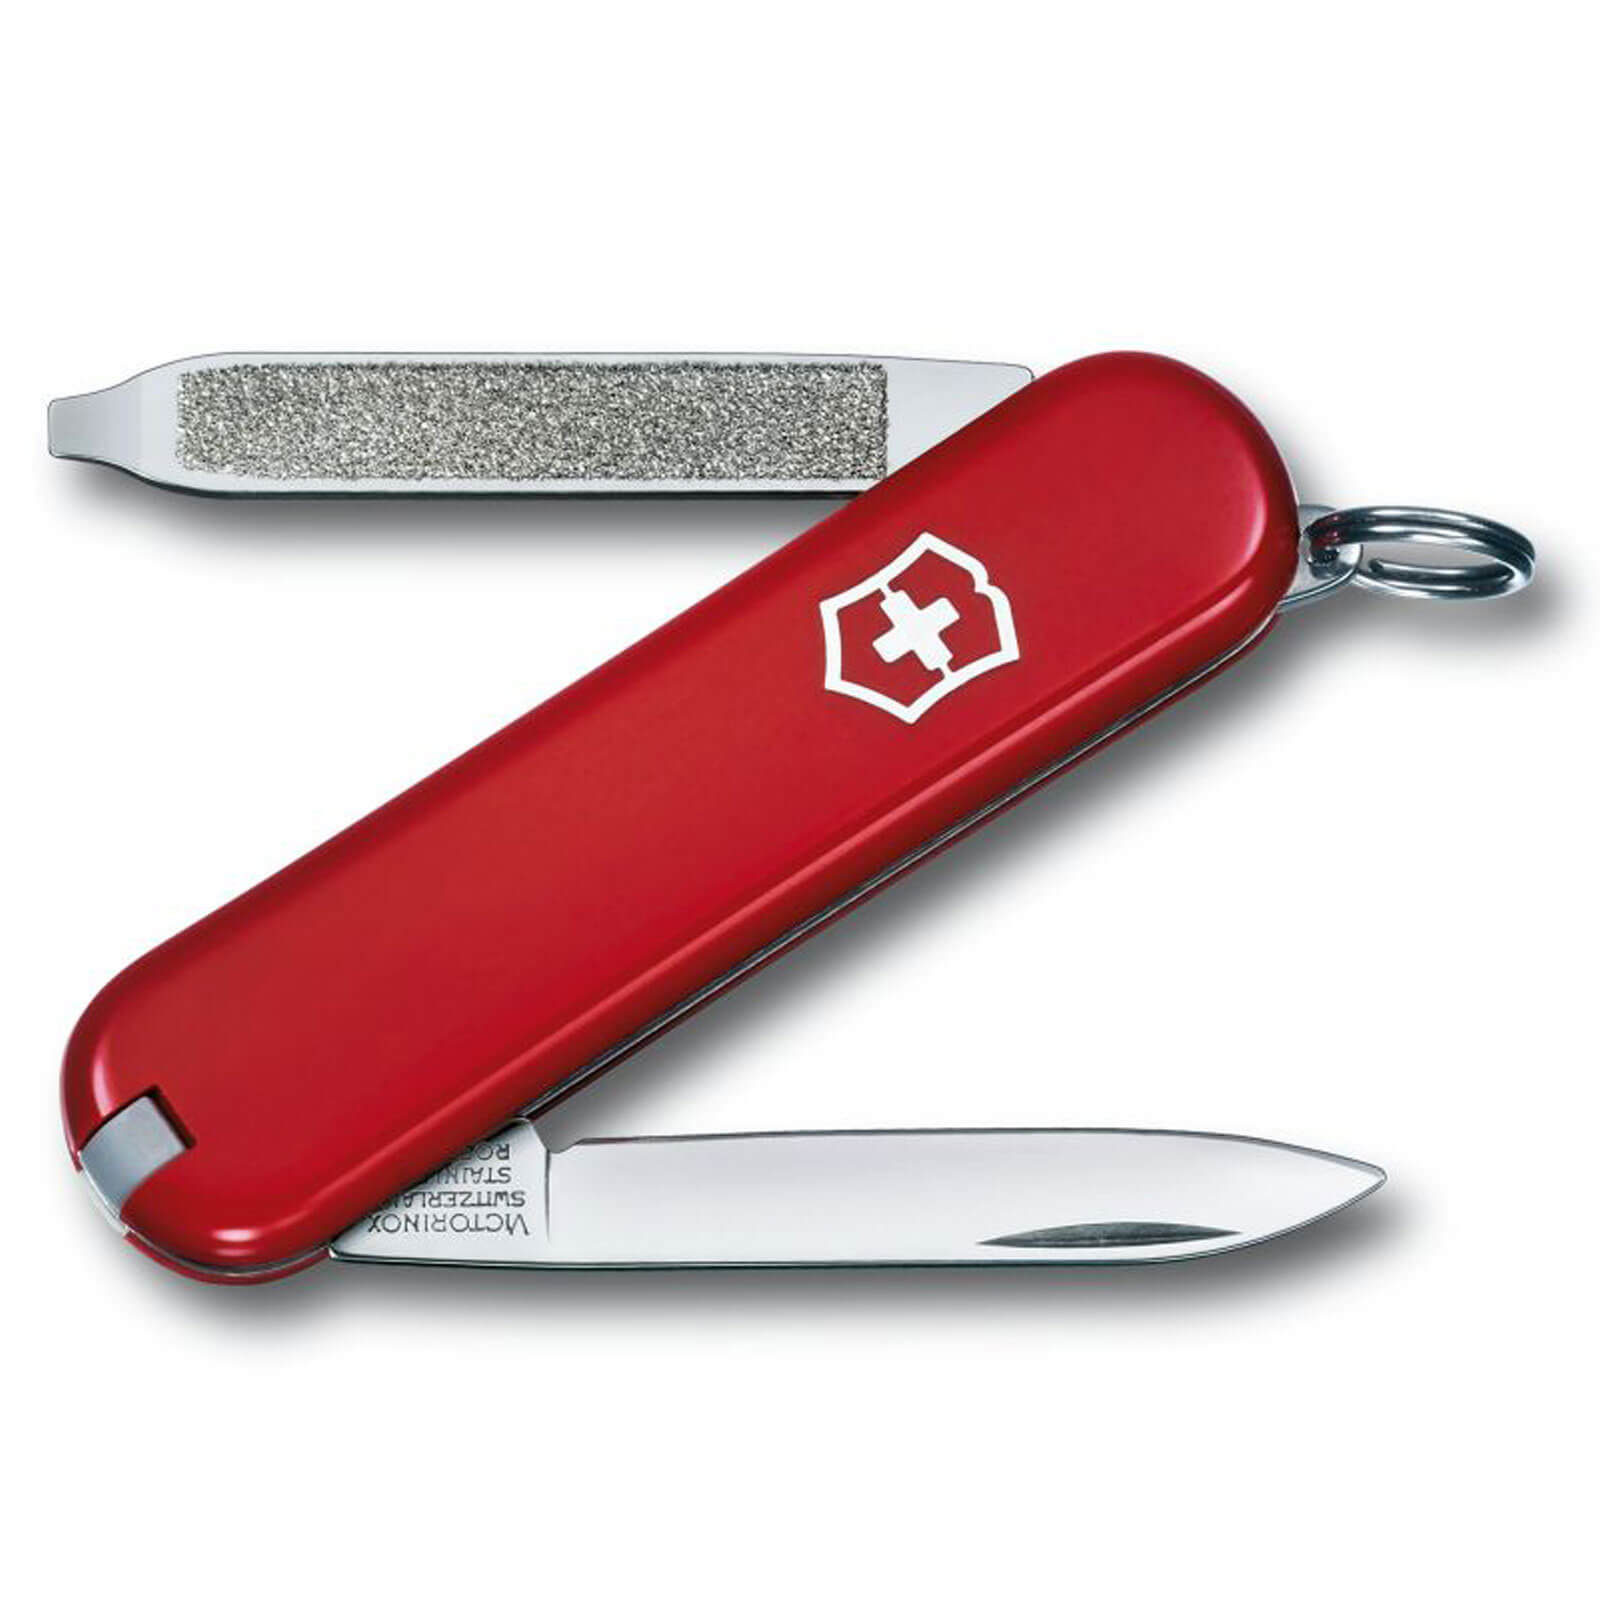 Image of Victorinox Escort Swiss Army Knife Red